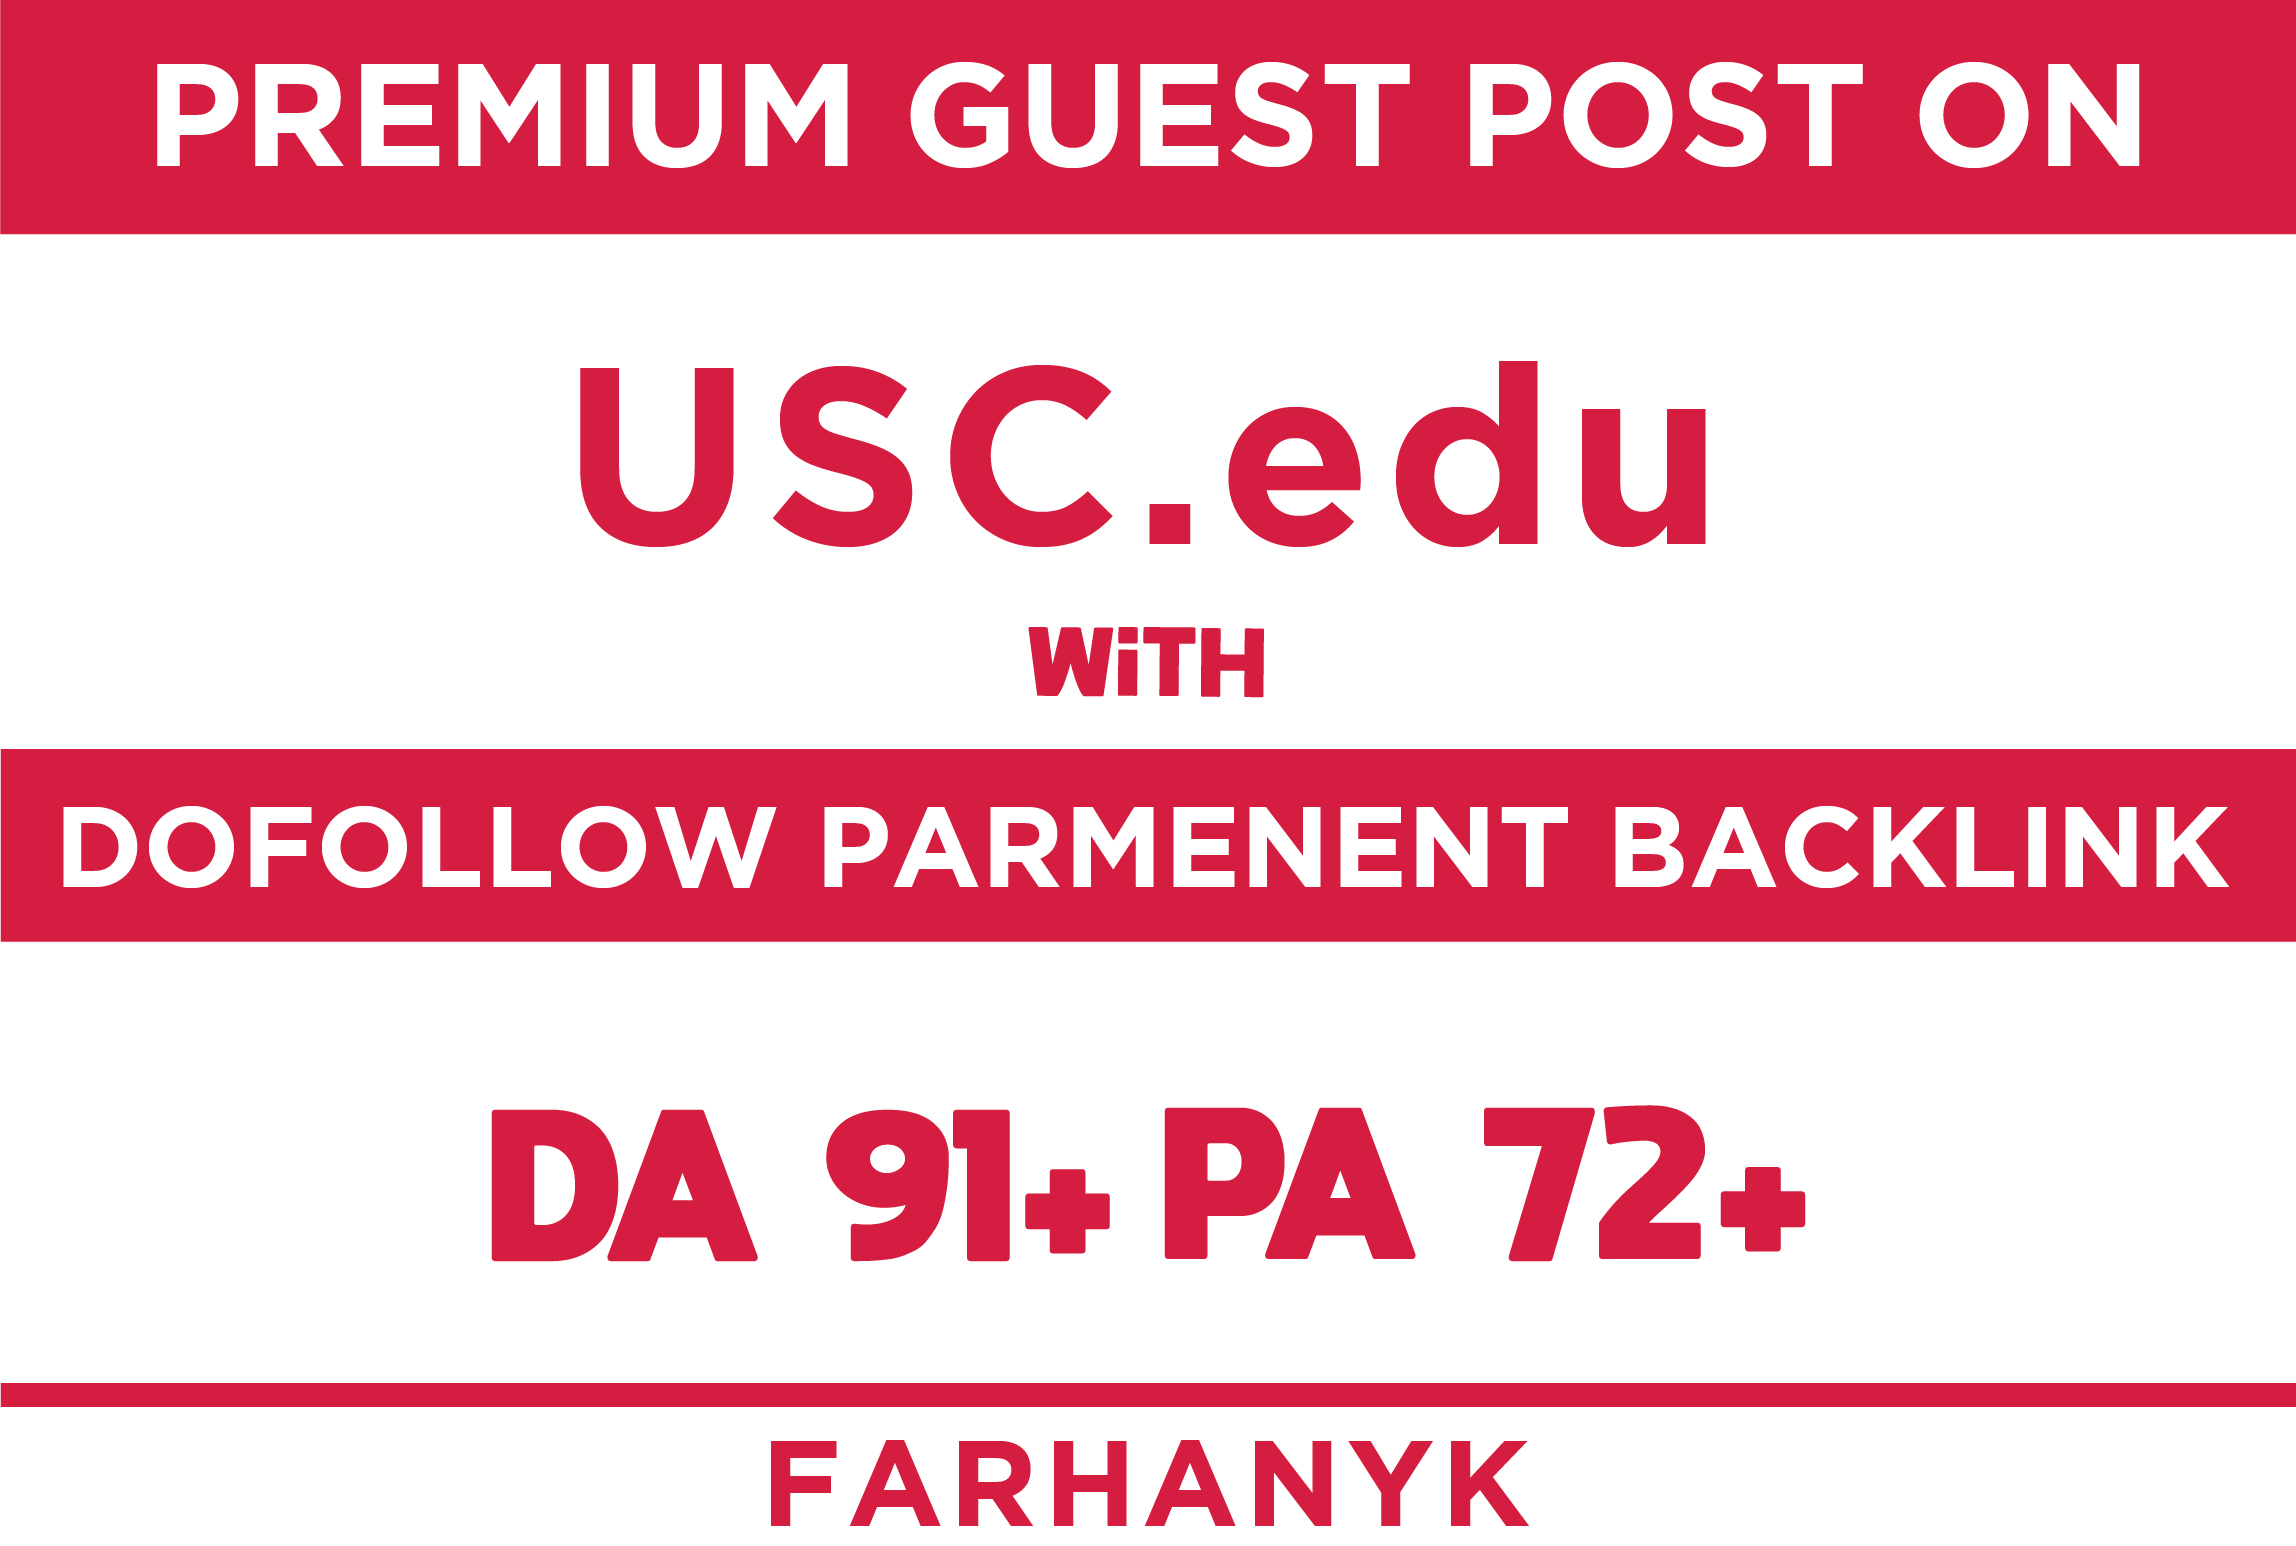 make guest post on university of southern california with da91 pa72 blog